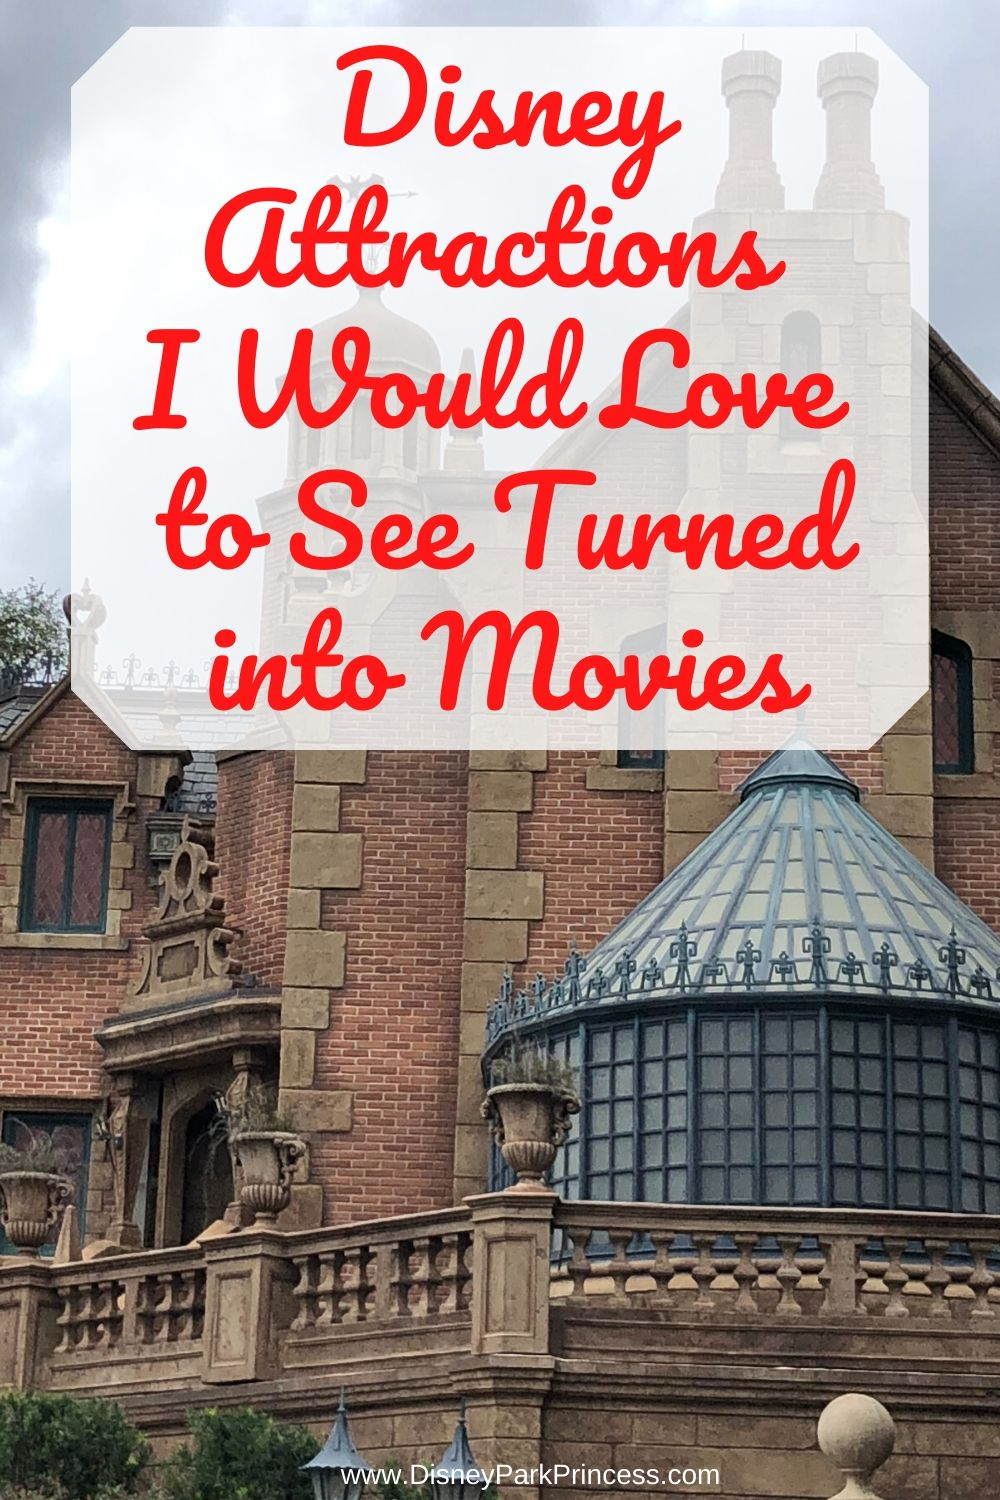 Here are a few attractions I would love to see Disney make into movies, including a plot summary of what I'd love to see. #disney #waltdisneyworld #wdw